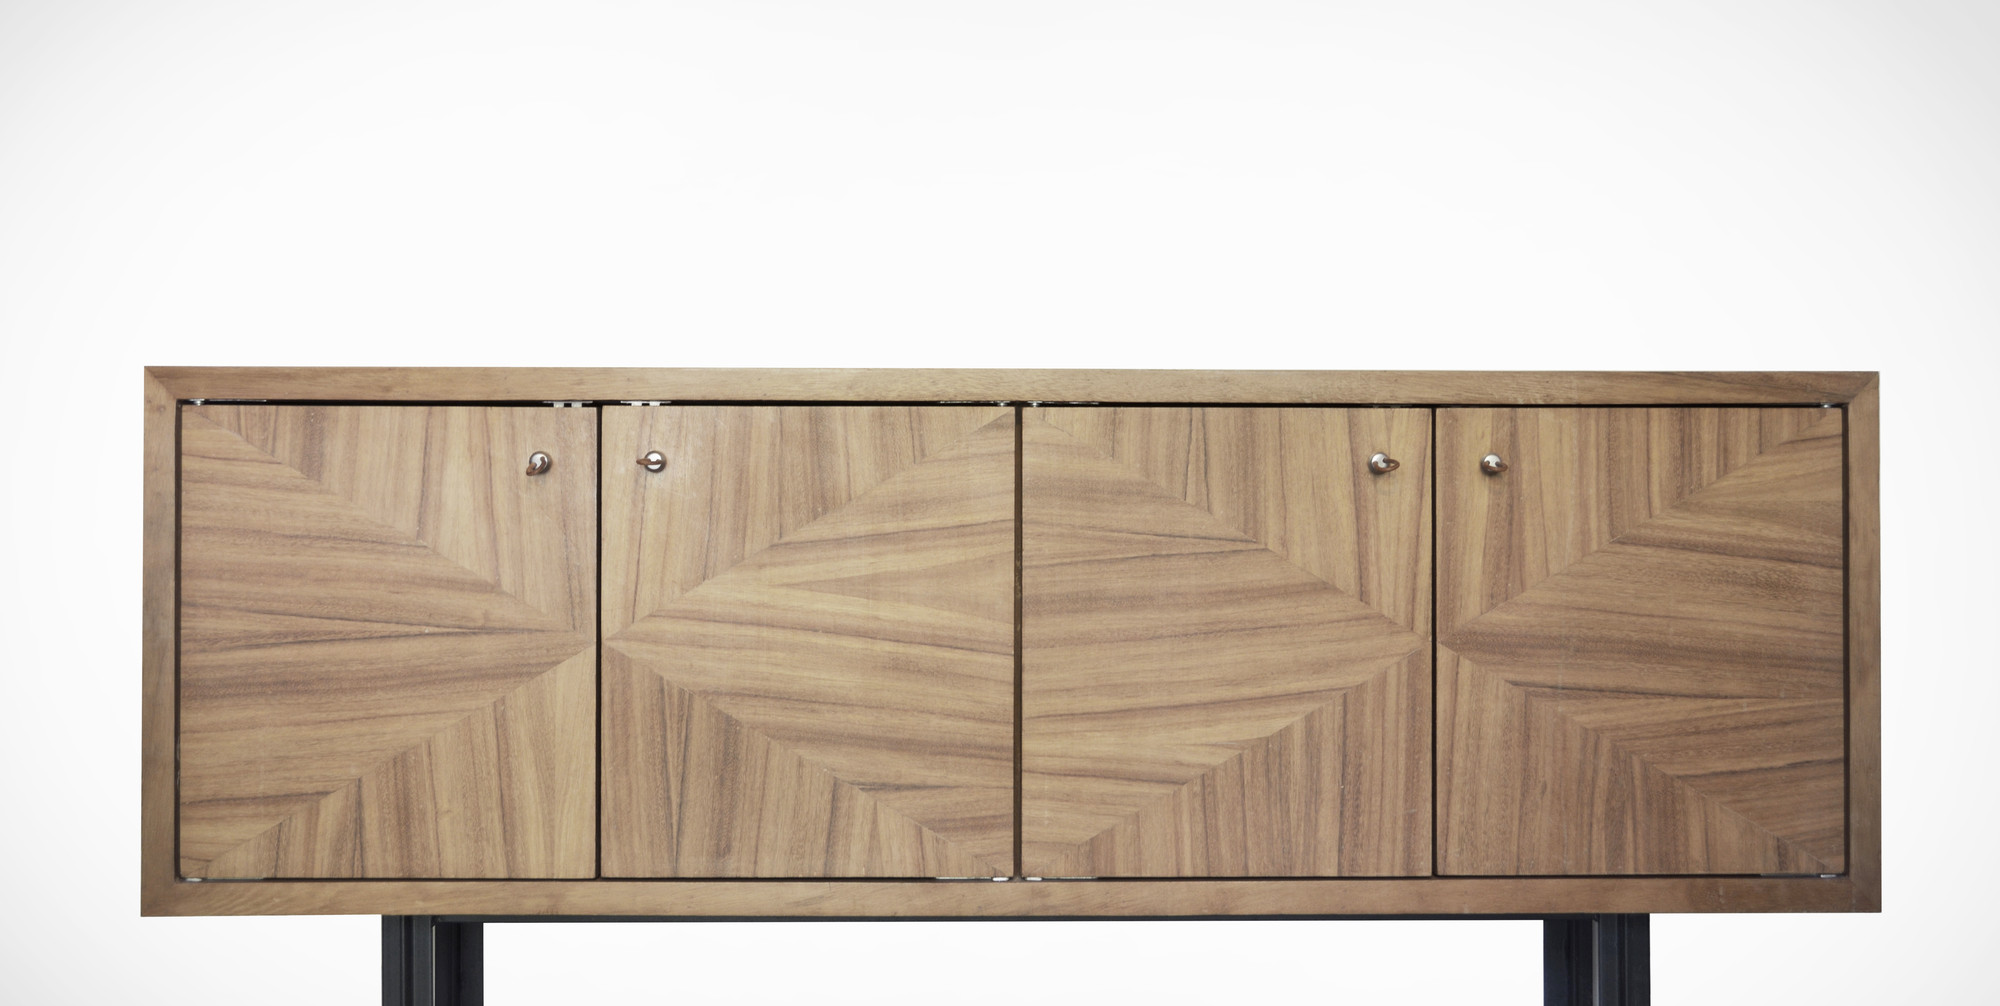 Credenza ARSº. Image Courtesy of Atelier ARS°